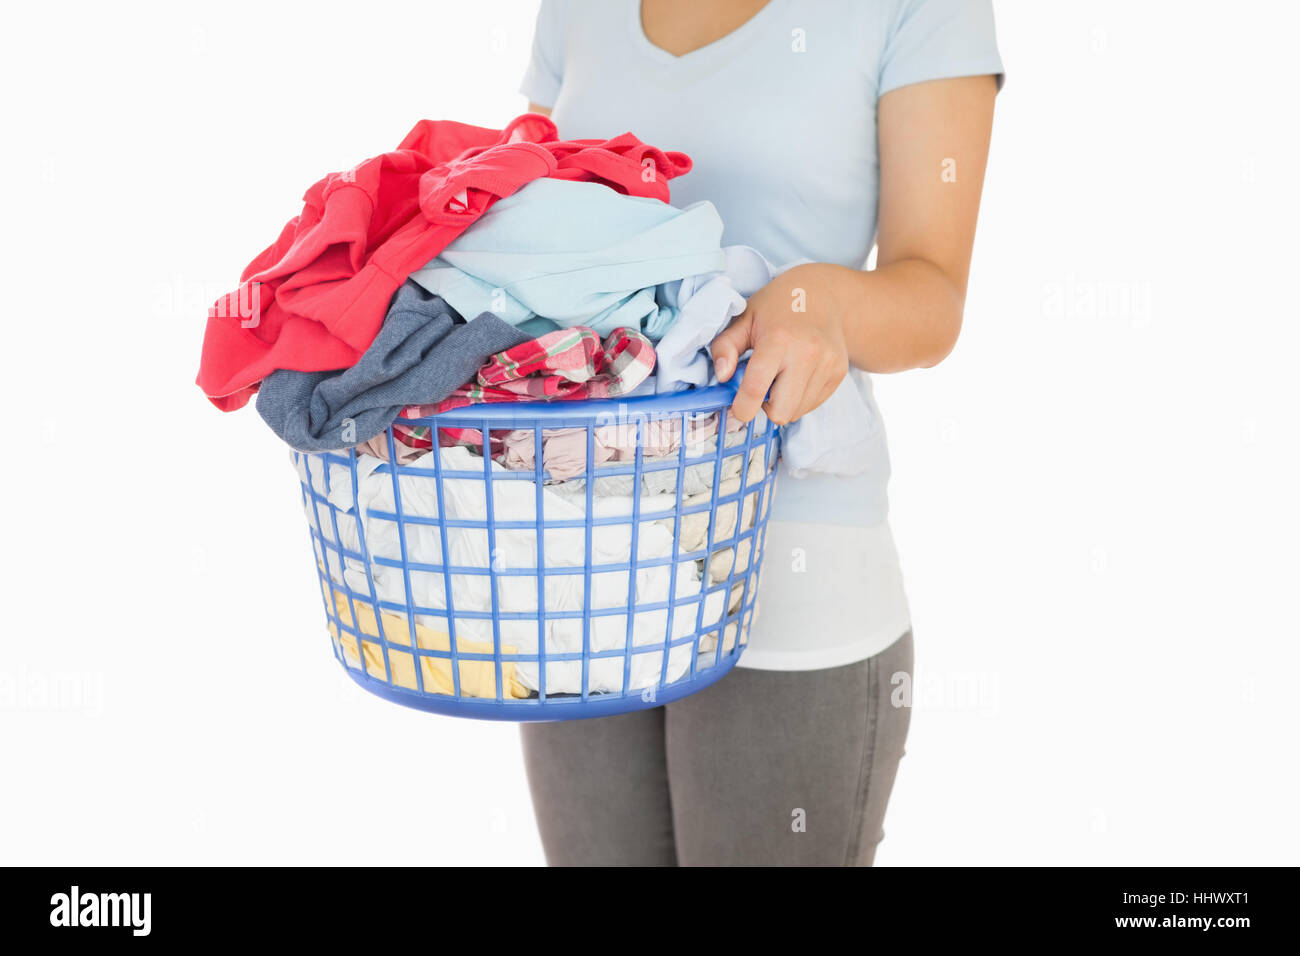 Woman holding an overflowing laundry basket - Stock Image